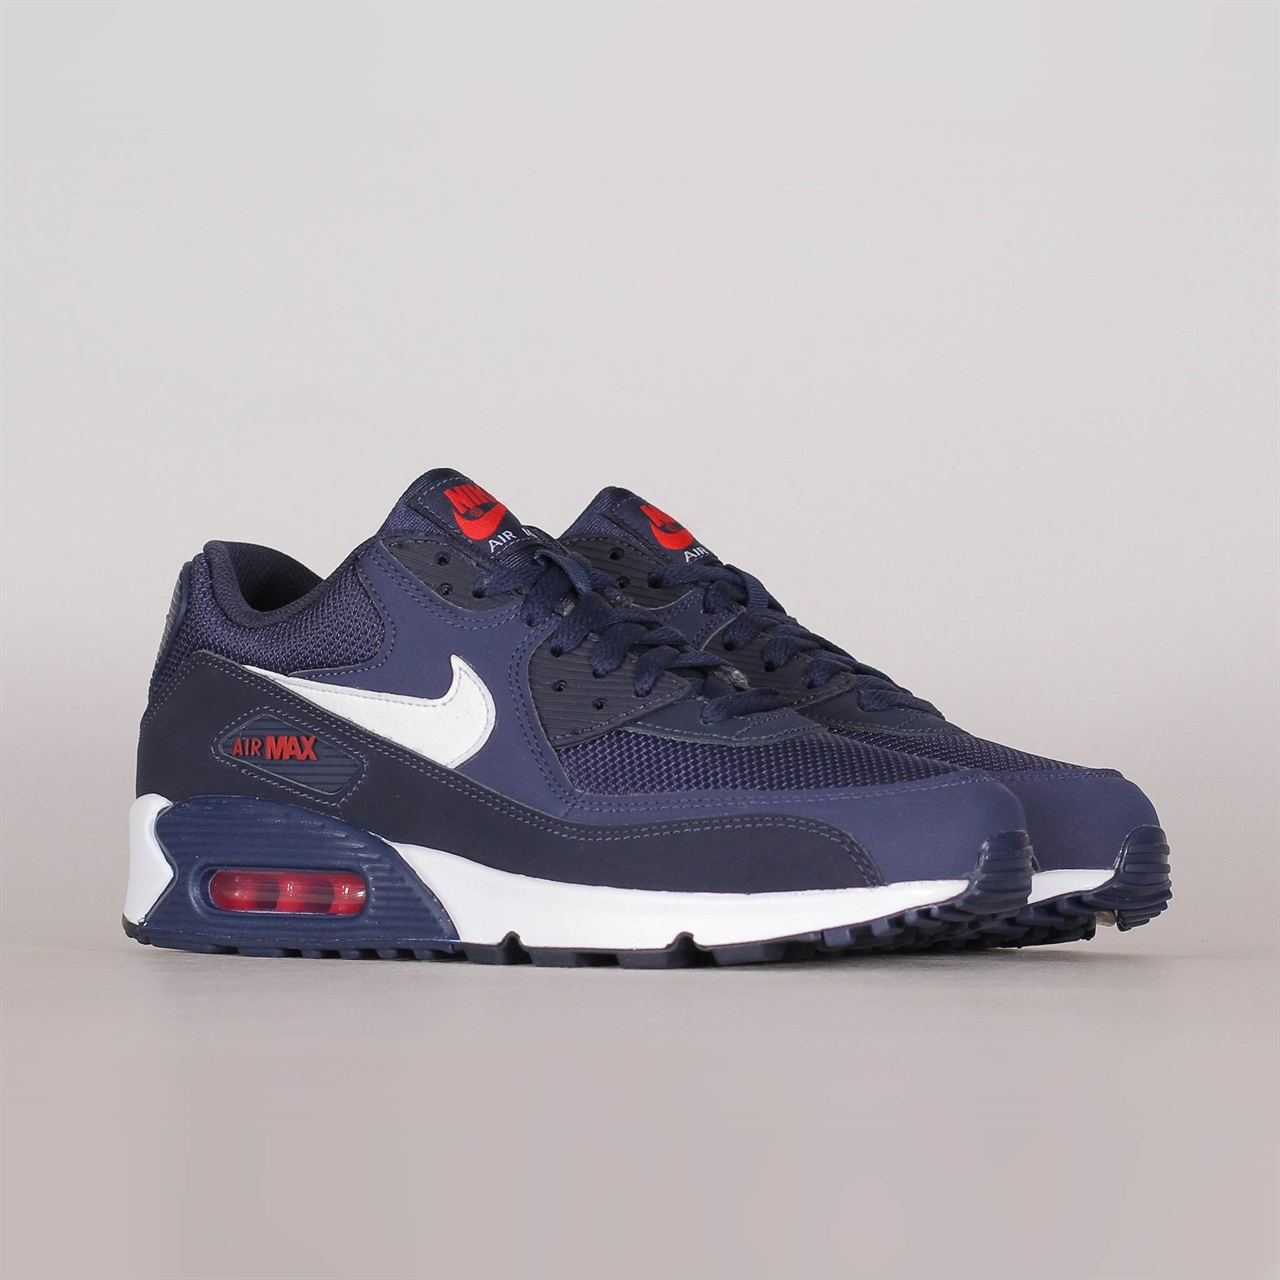 on sale de245 4069c Shelta - Nike Air Max 90 Essential (AJ1285-403)